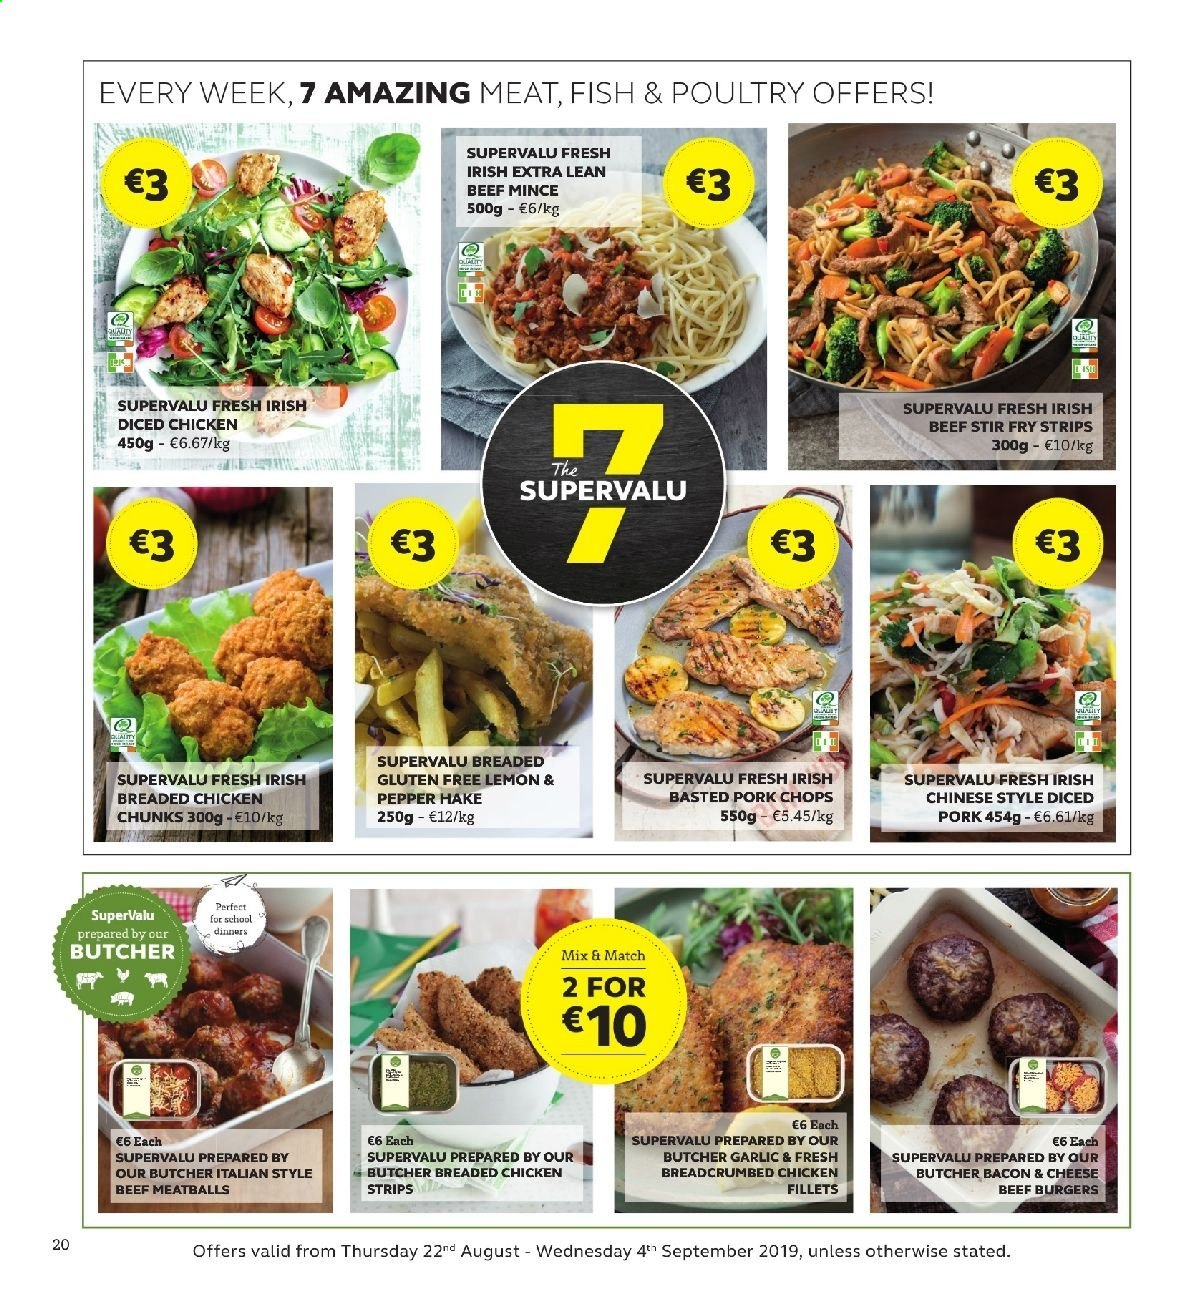 SuperValu offer  - 22.8.2019 - 4.9.2019 - Sales products - hake, fish, meatballs, hamburger, fried chicken, beef burger, bacon, strips, pepper, chicken, stir fry strips, pork chops. Page 20.